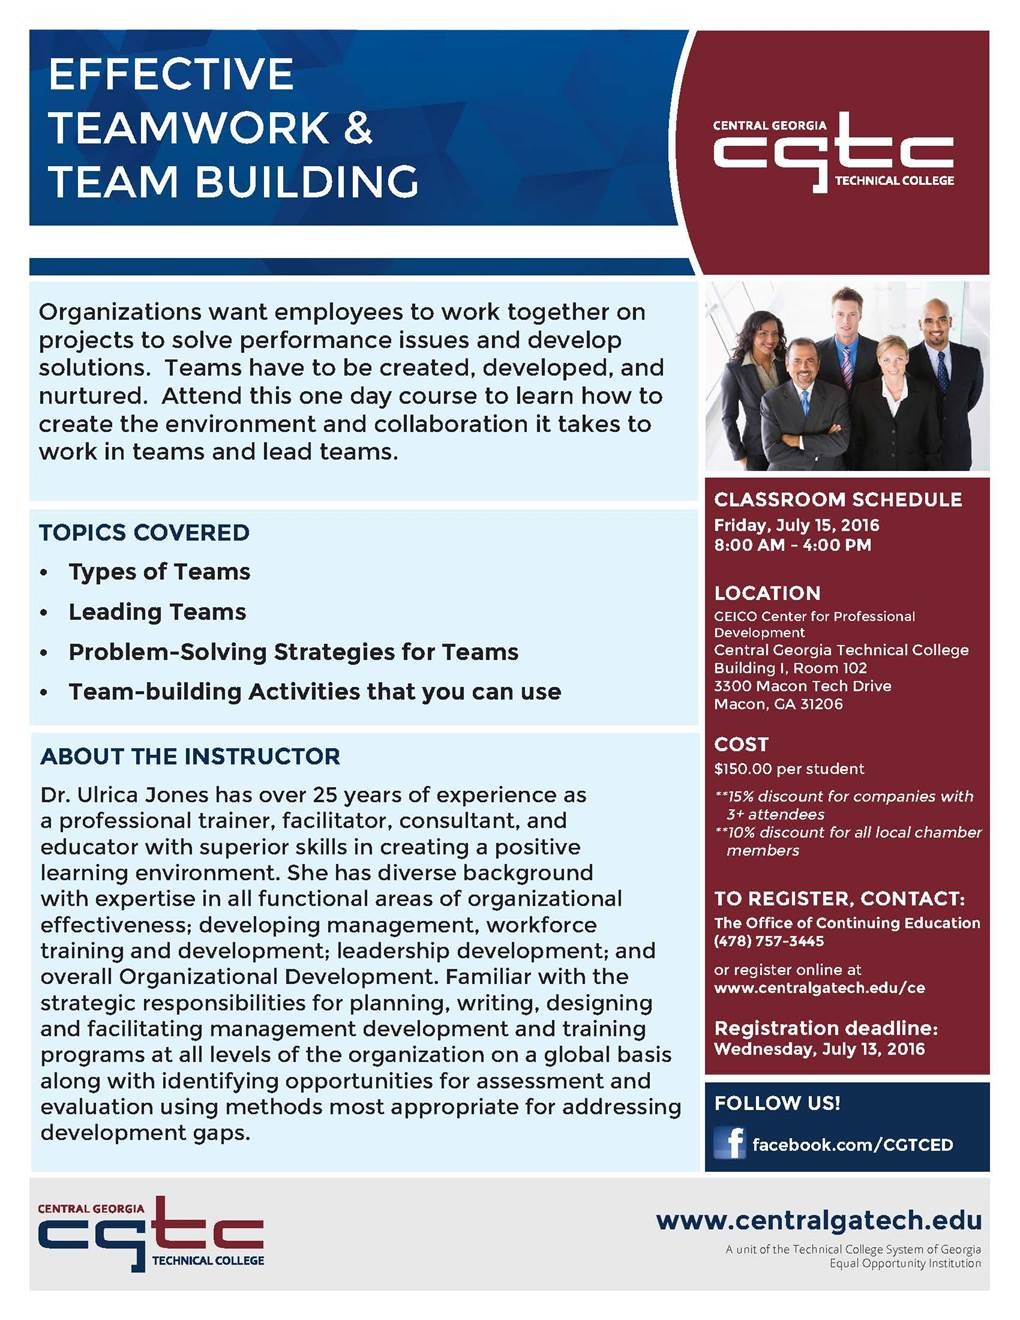 CGTC Effective Teamwork & Team Building Class